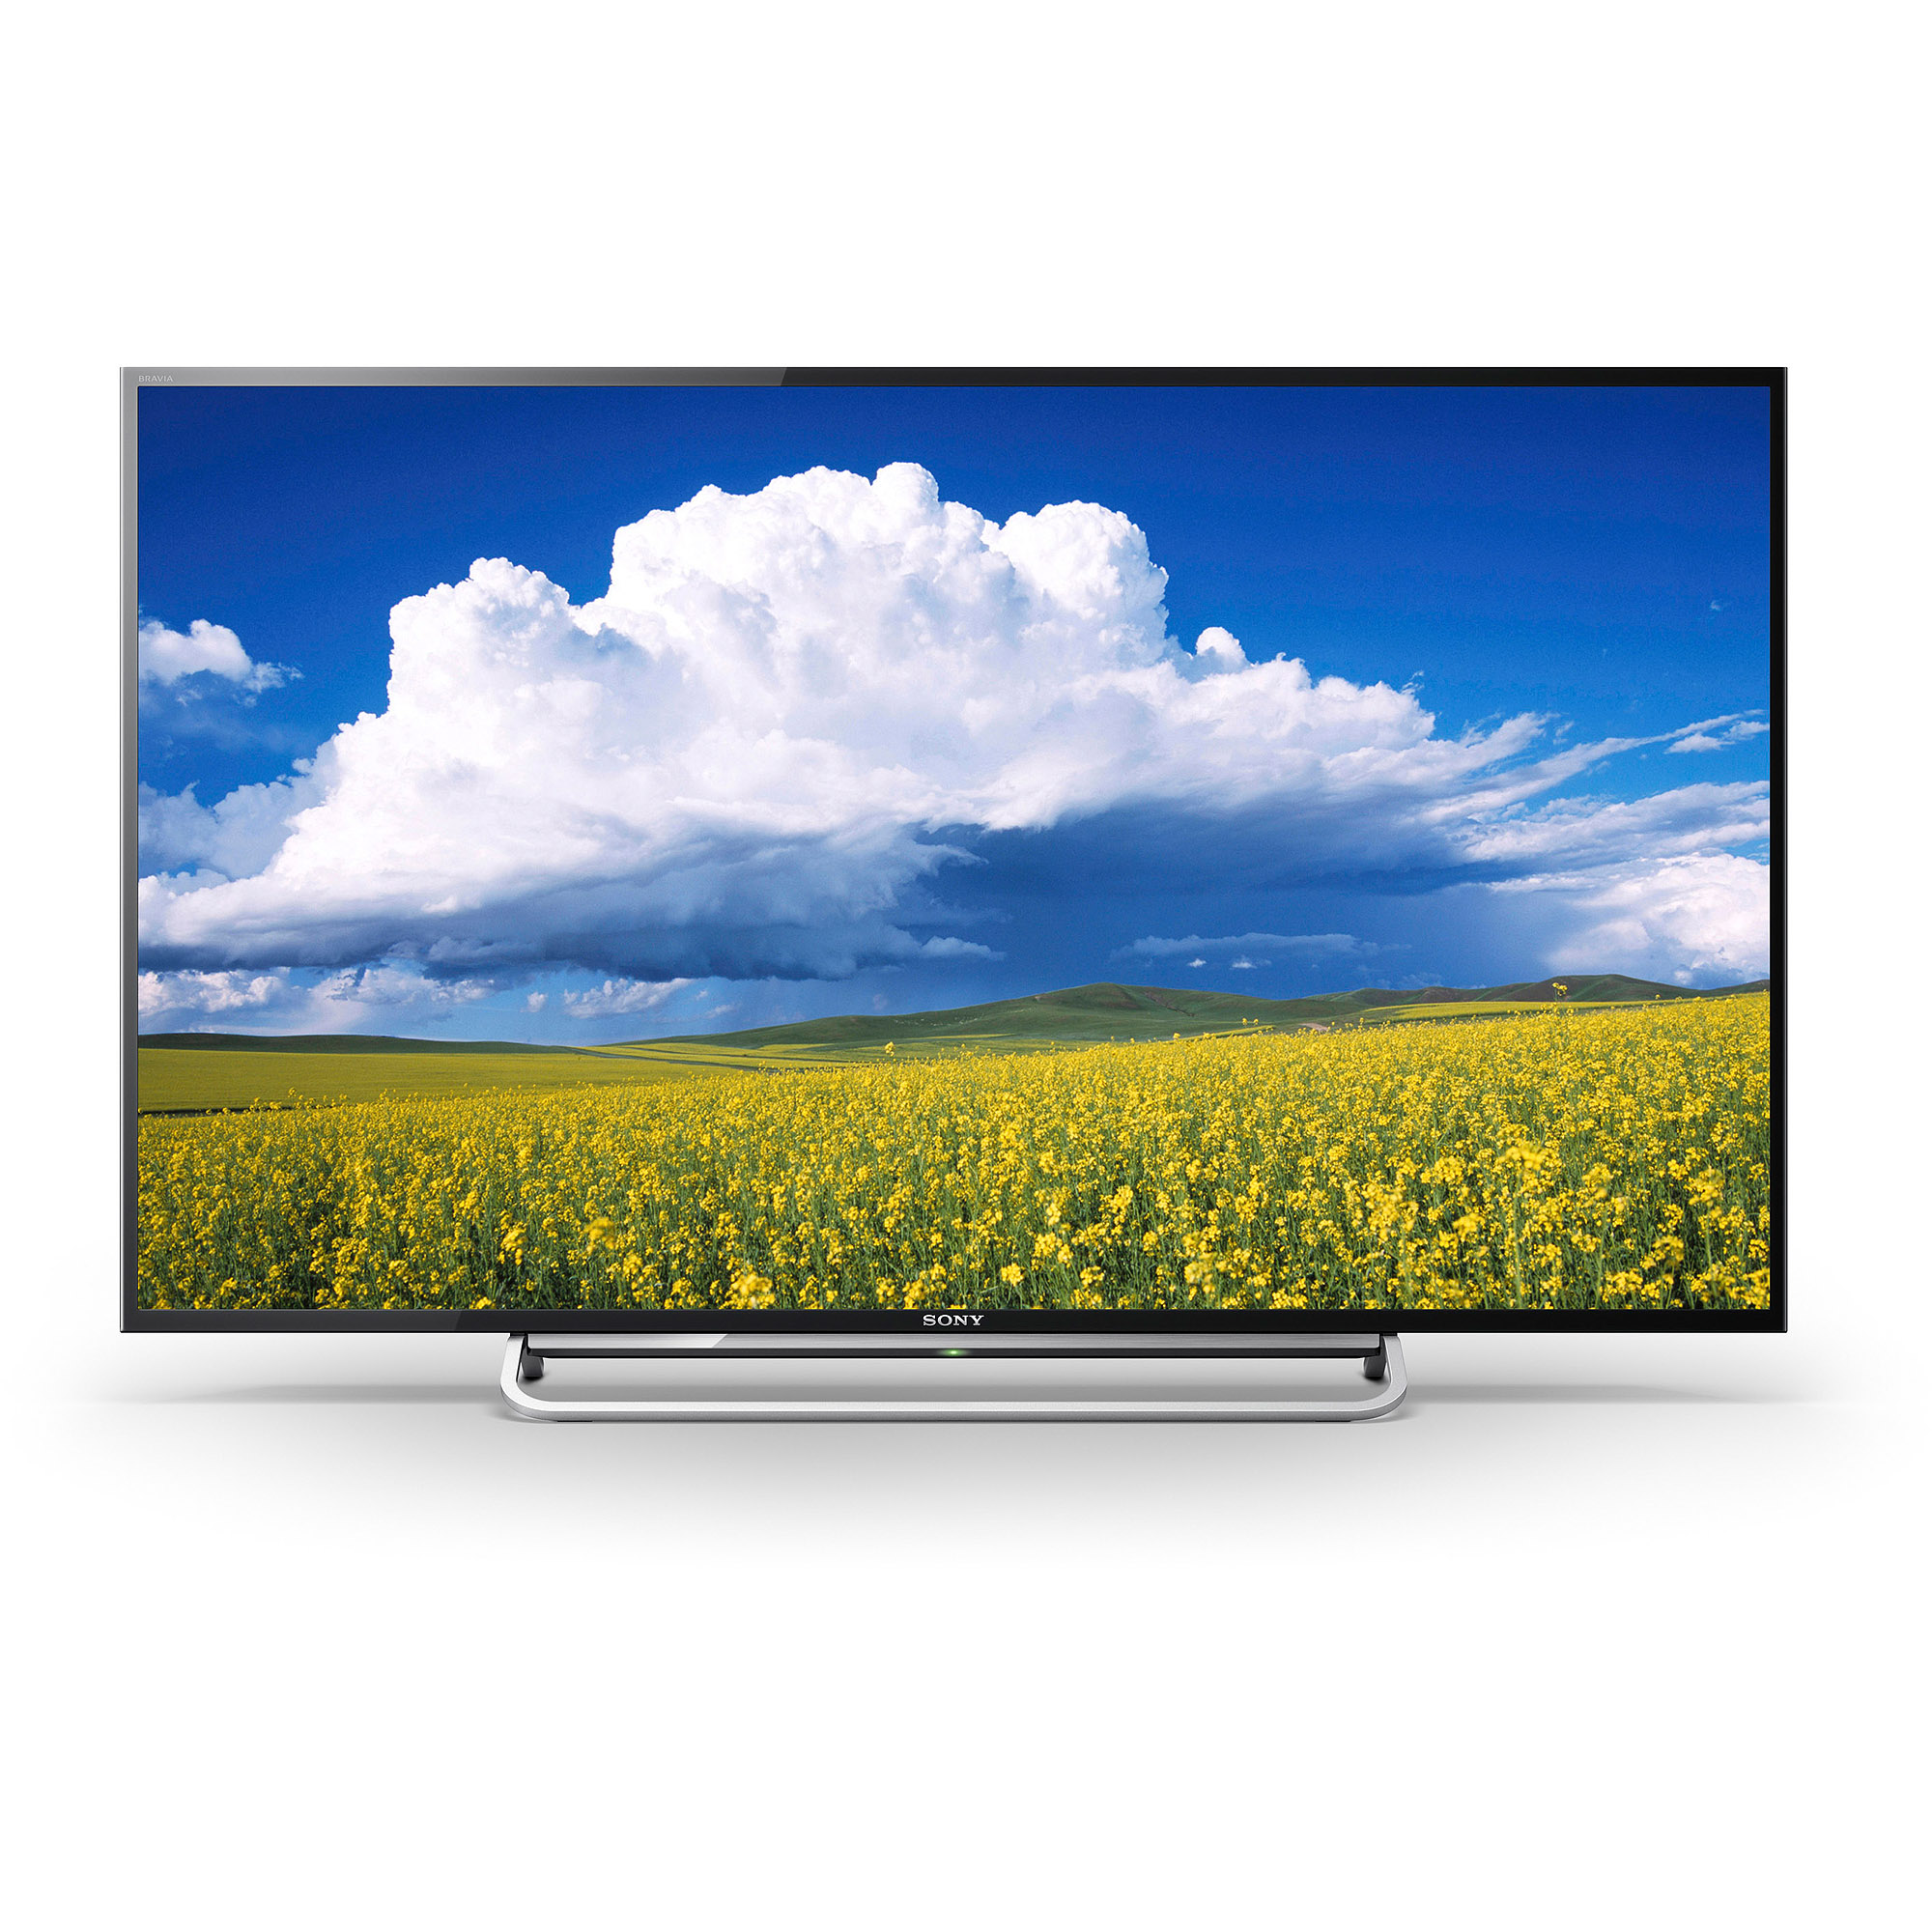 sony 48 w600 series led hdtv walmart com rh walmart com sony bravia full hd 1080p manual sony bravia 1080p manual